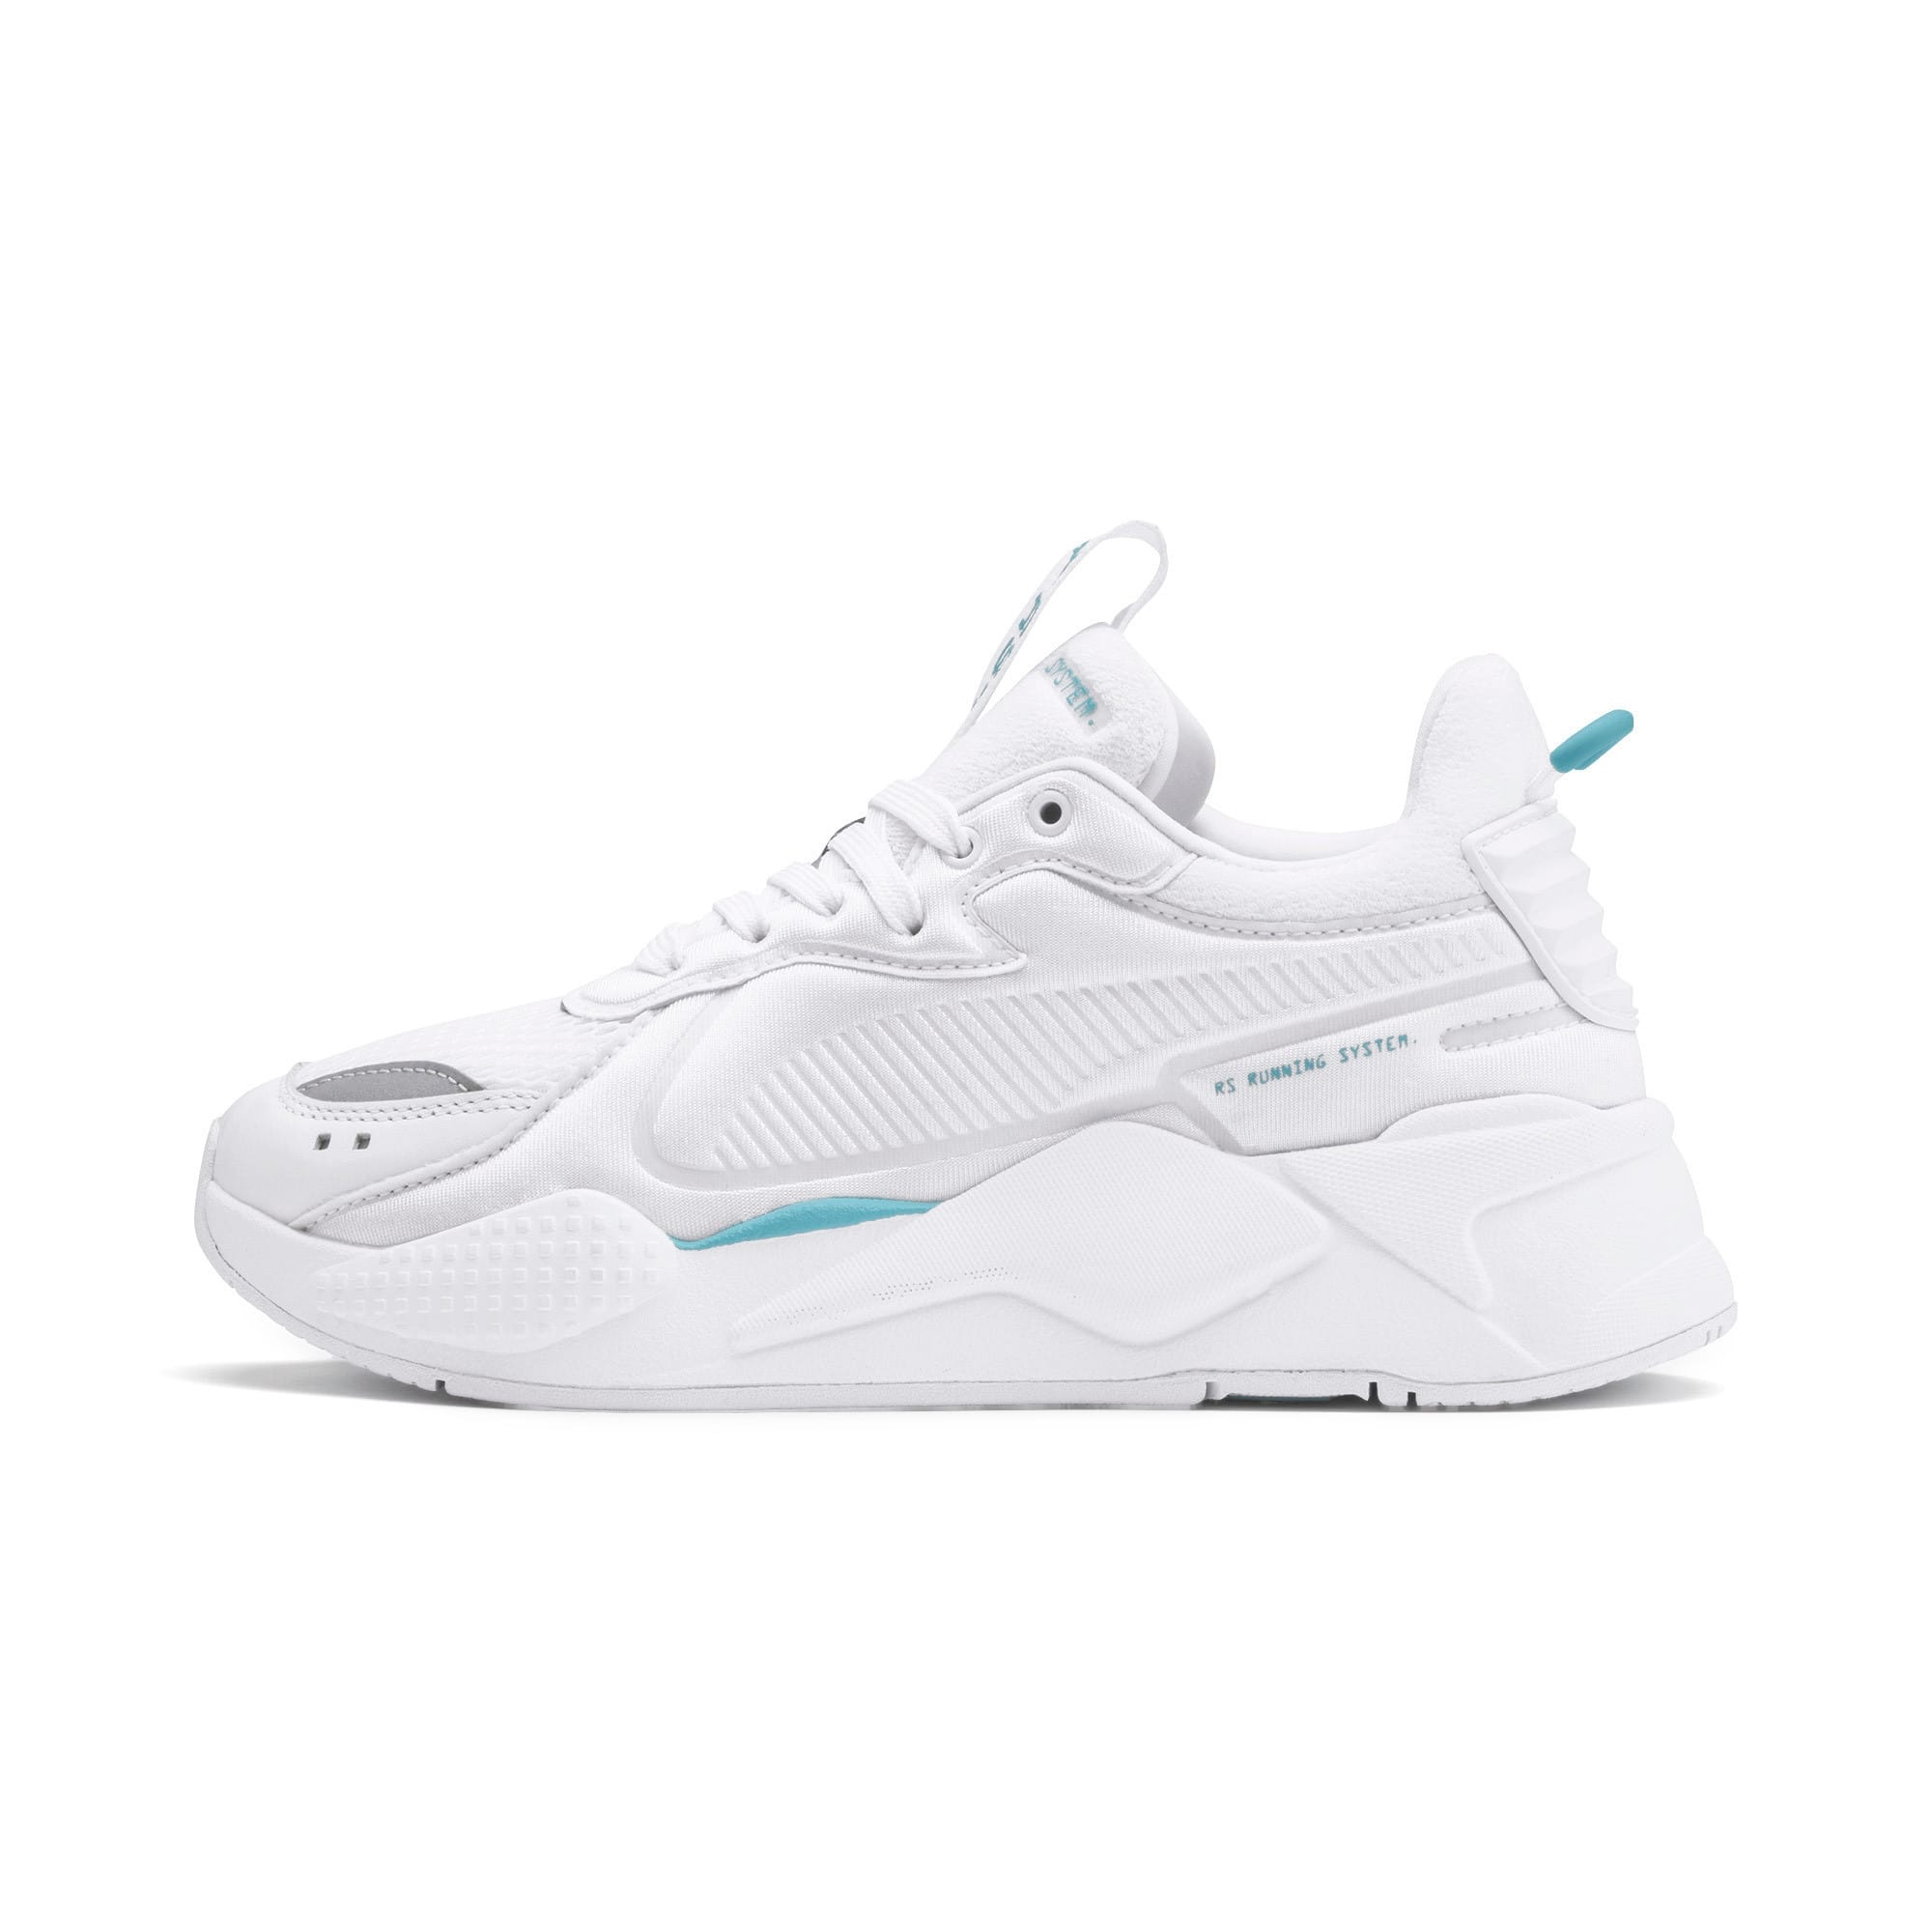 Thumbnail 1 of RS-X Softcase Trainers, Puma White-Milky Blue, medium